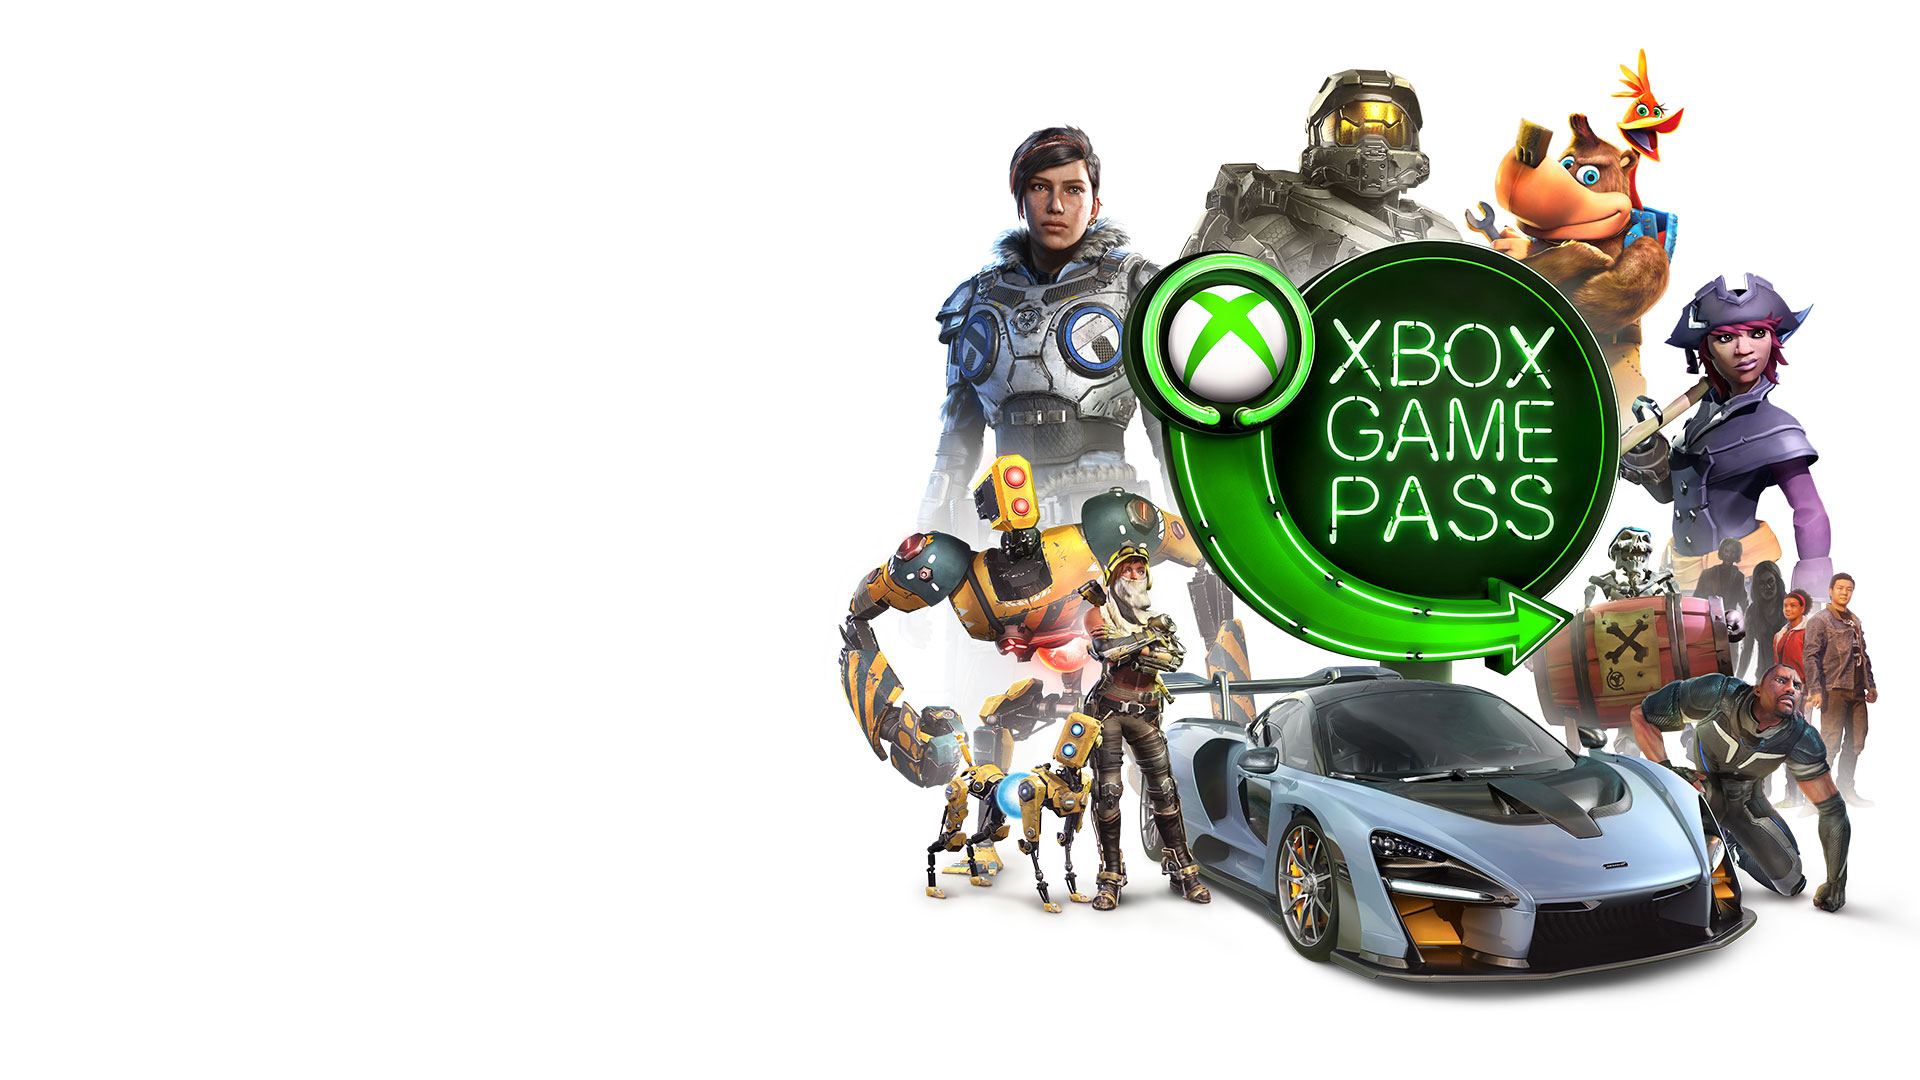 Logo di Xbox Game Pass circondato da personaggi di giochi Xbox come Master Chief, Banjo e Kazooie, pirati di Sea of Thieves e personaggi di Recore